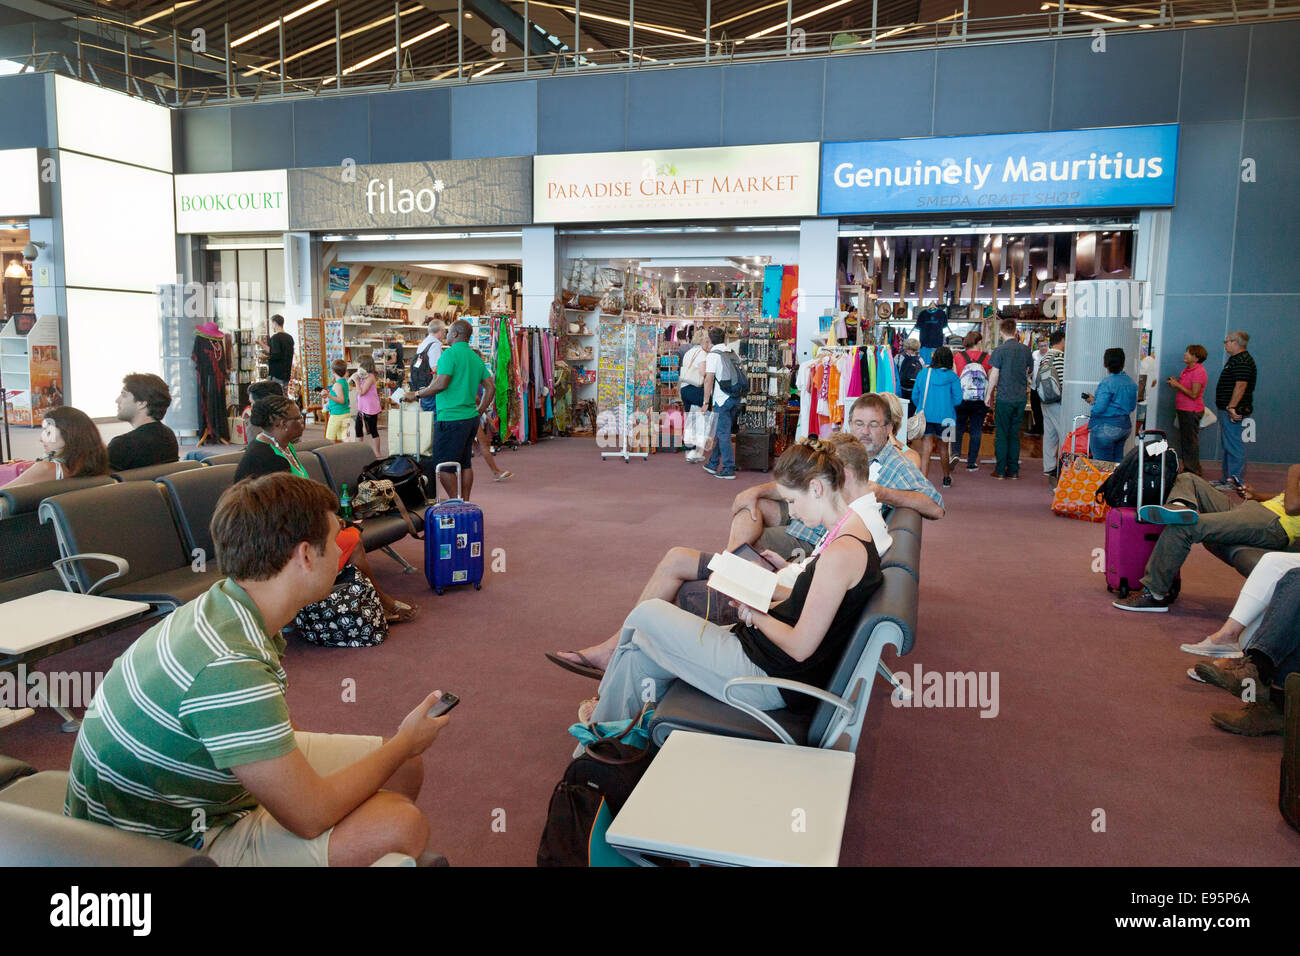 People sitting in the Departure lounge in the terminal, Mauritius airport, Africa - Stock Image